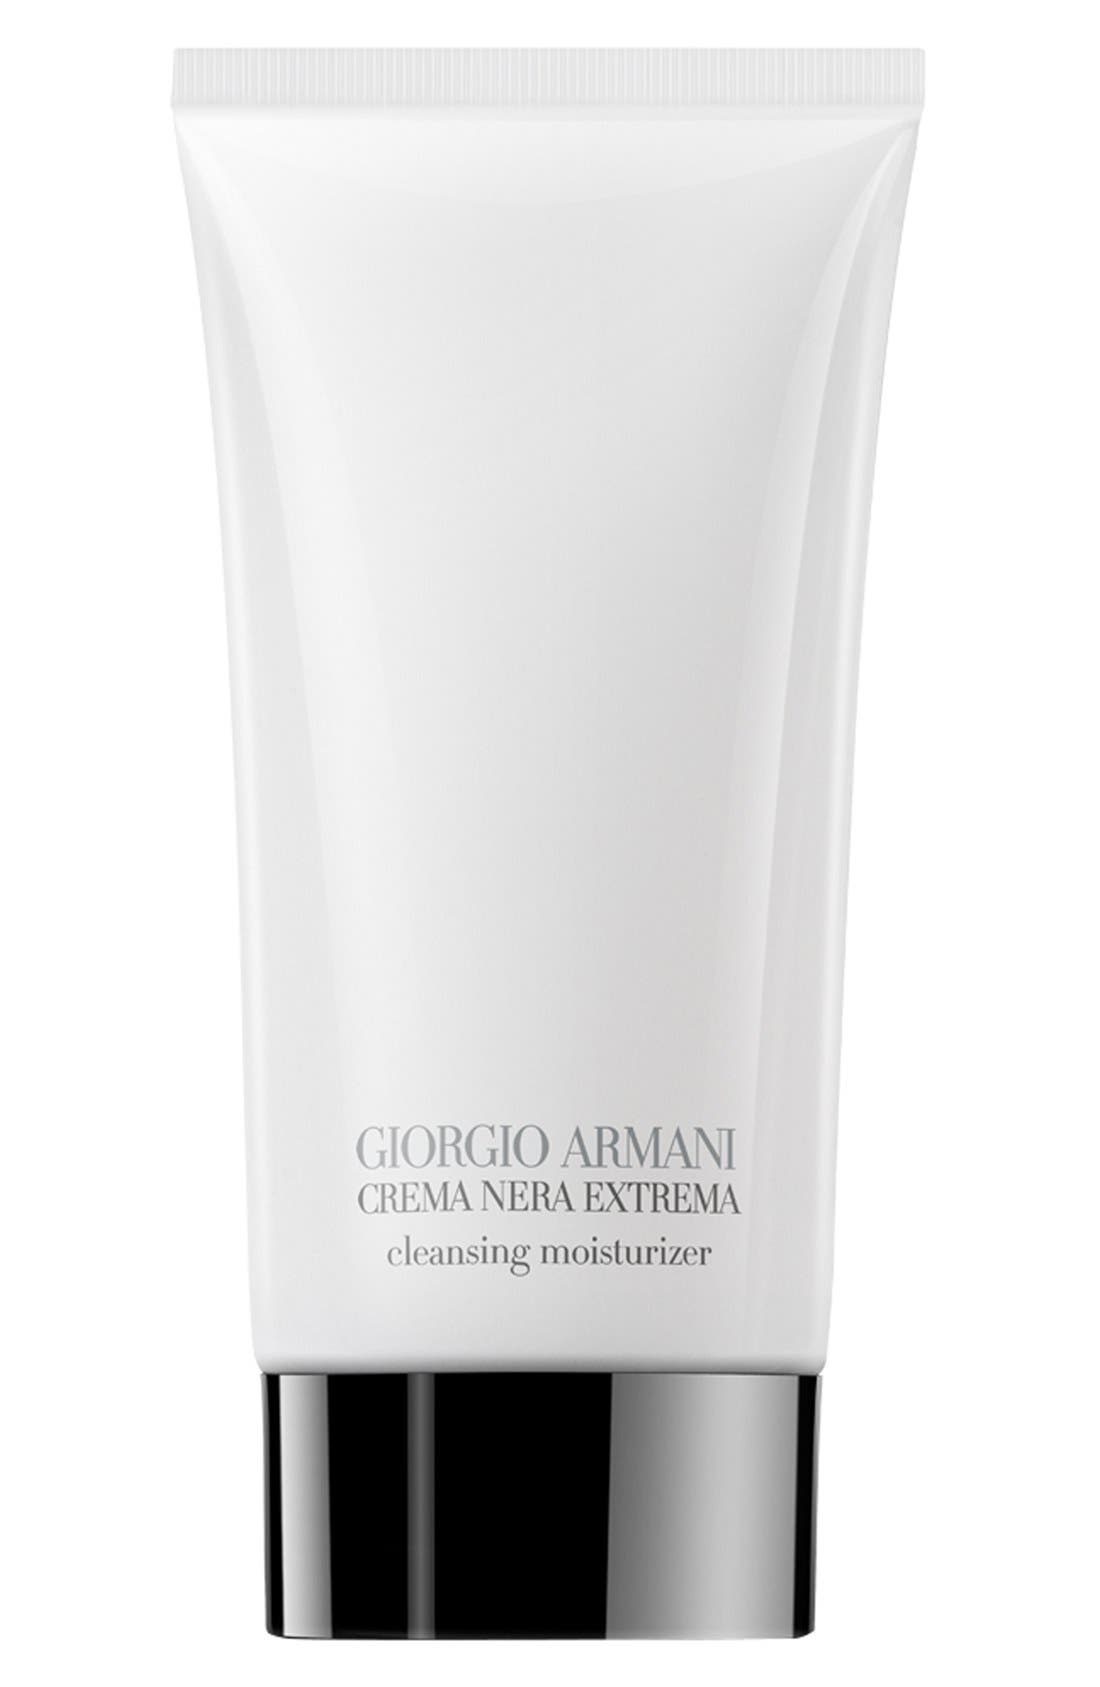 'Crema Nera Extrema' Supreme Clarifying Foam-in-Cream Cleansing Moisturizer,                             Main thumbnail 1, color,                             NO COLOR